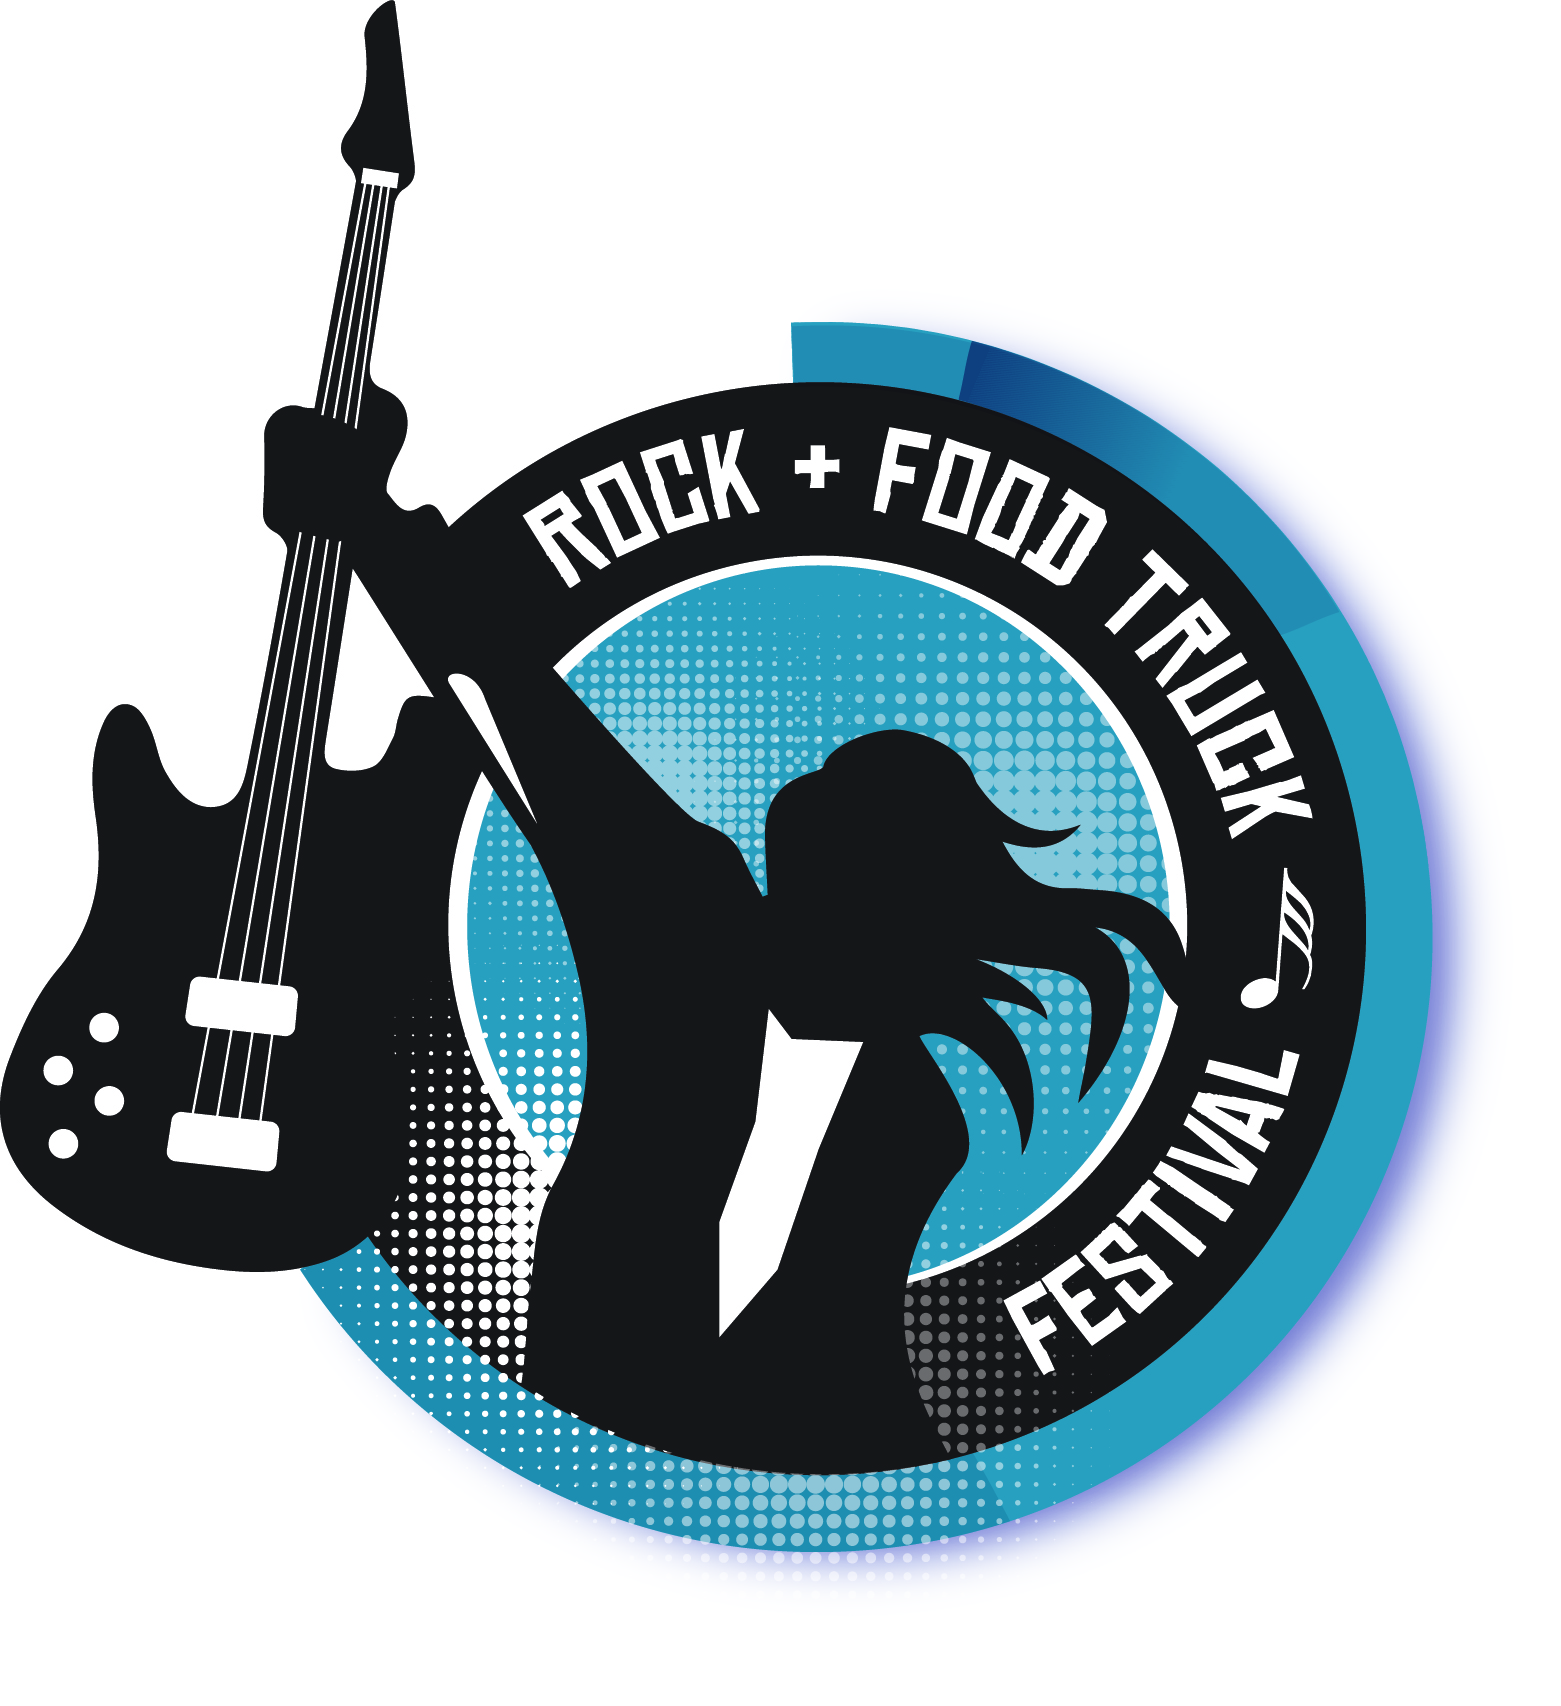 Rock and Food Truck Festival in Topeka